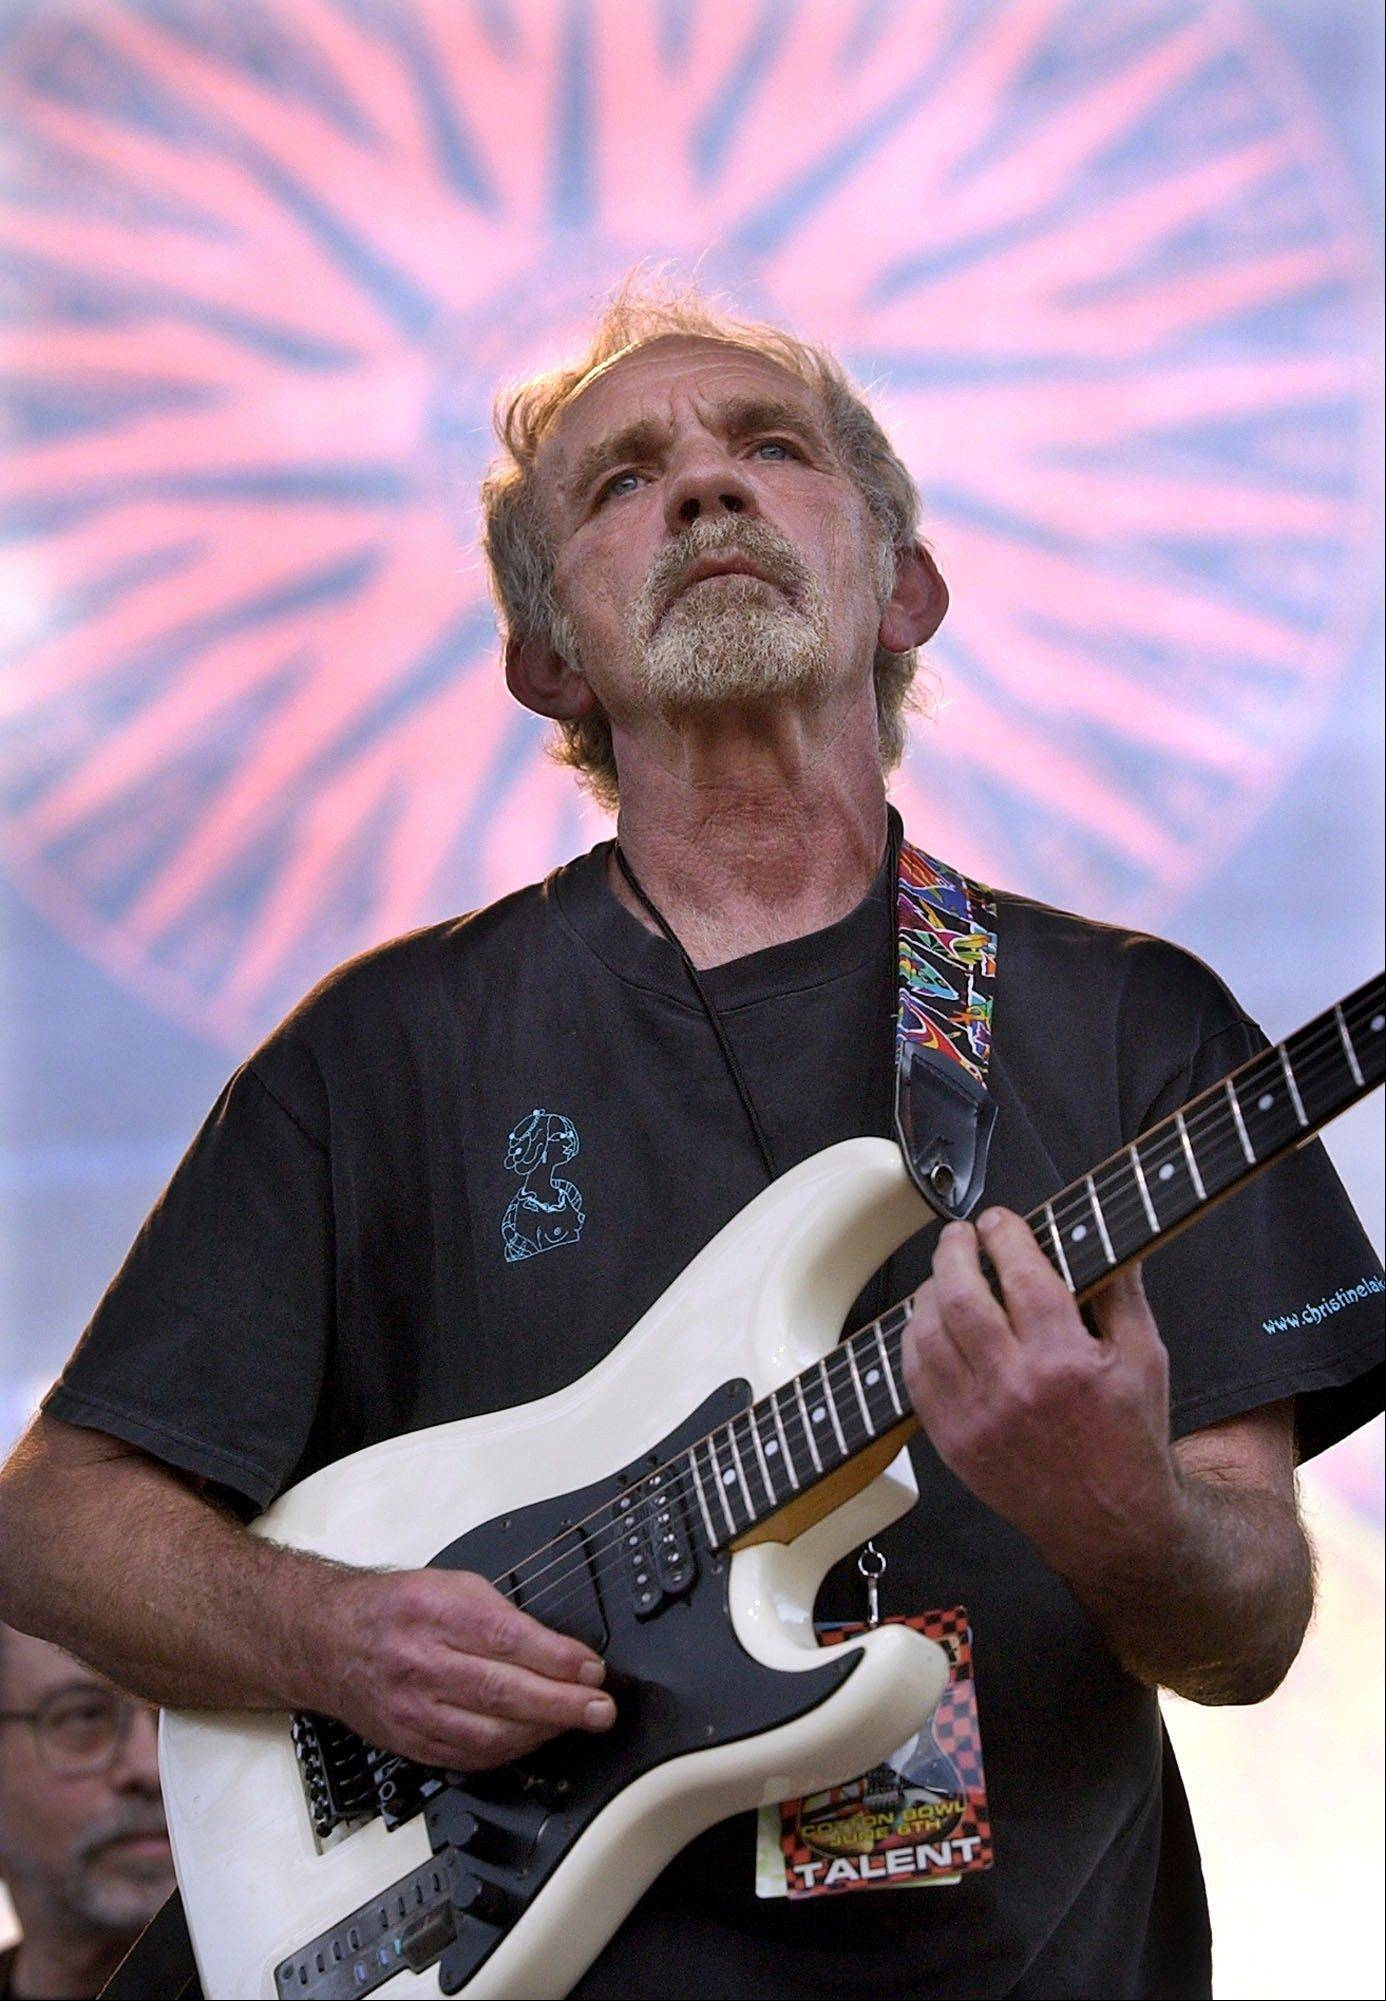 "In this June 5, 2004 file photo, singer-songwriter J.J. Cale plays during the Eric Clapton Crossroads Guitar Festival in Dallas. Cale, whose best-known songs became hits for Eric Clapton with ""After Midnight"" and Lynyrd Skynyrd with ""Call Me the Breeze,"" died July 26, 2013. He was 74."